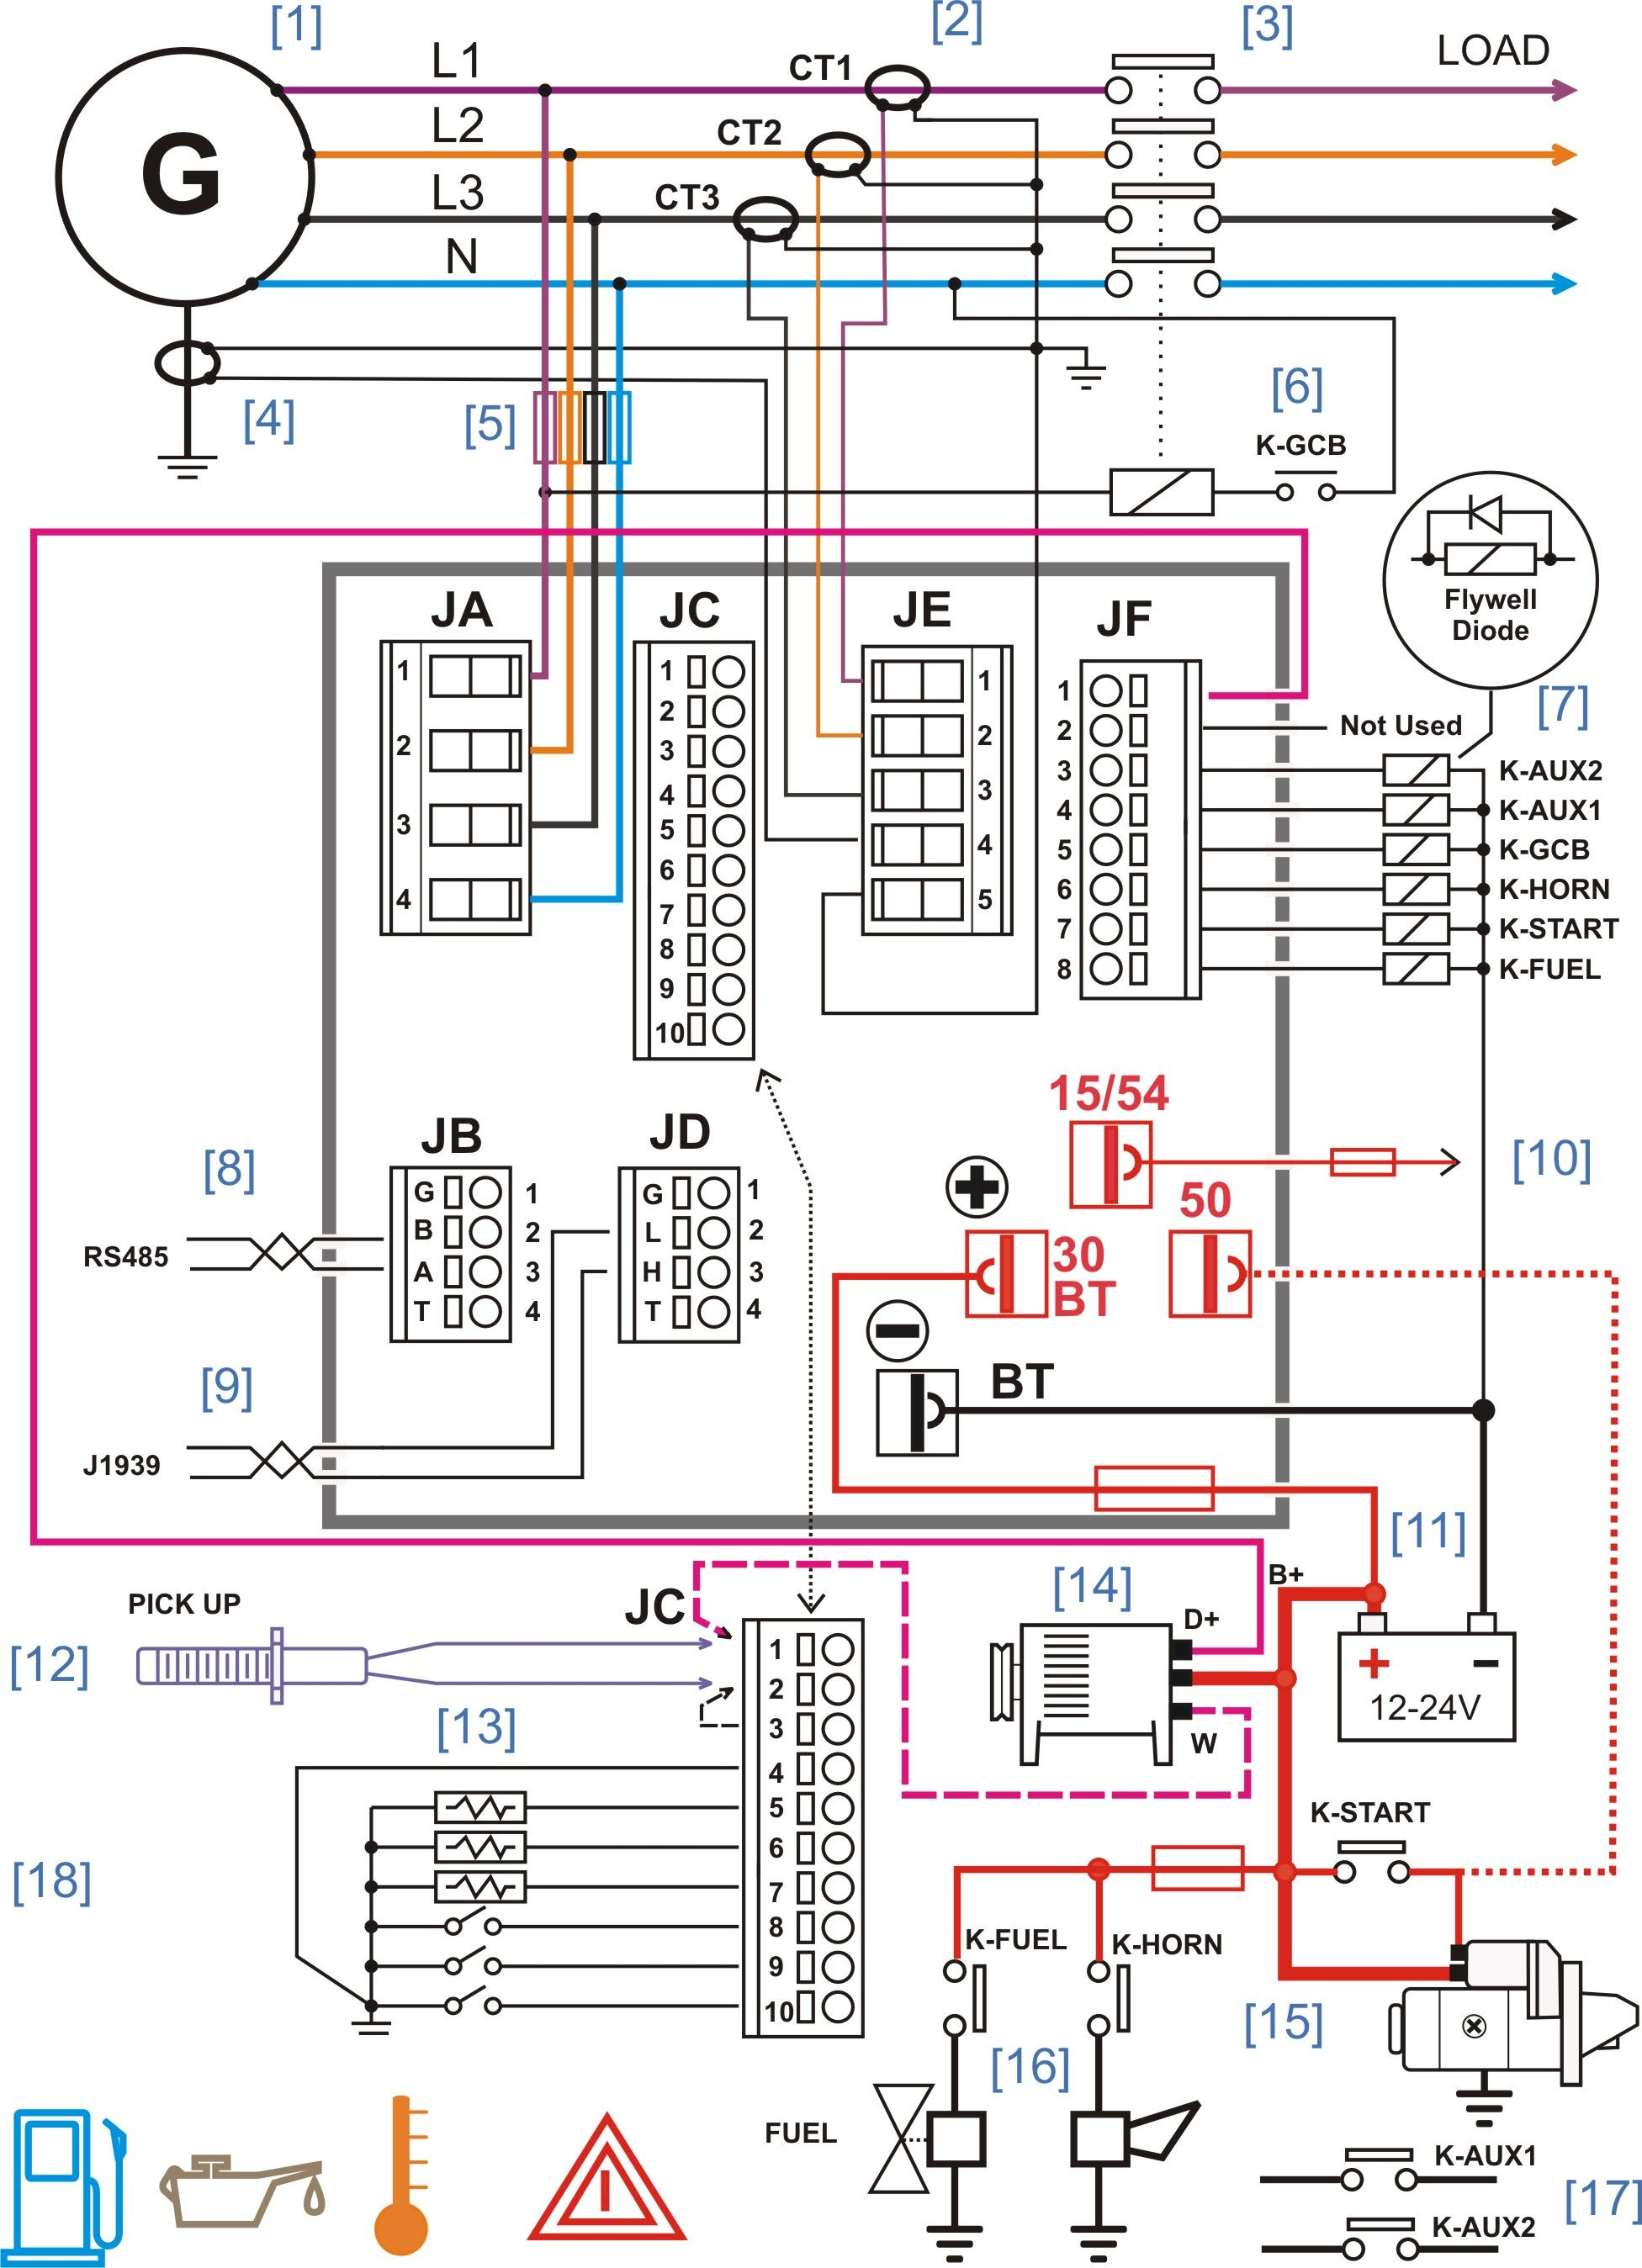 small resolution of diesel generator control panel wiring diagram diesel generators rh pinterest com fg wilson generator control panel wiring diagram diesel generator control